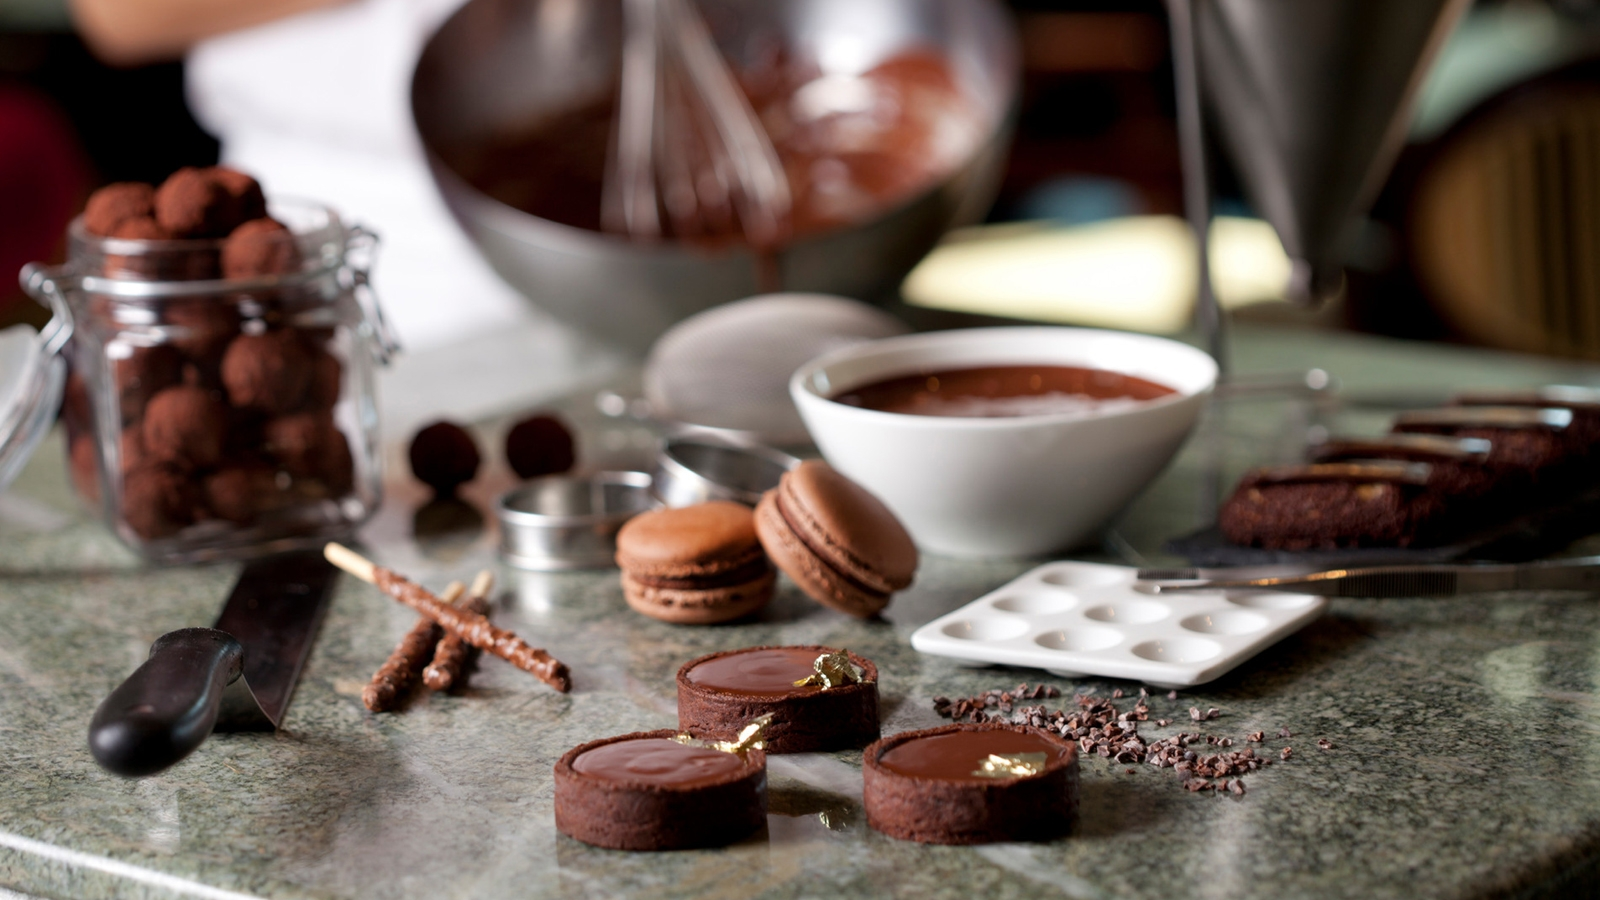 National Chocolate Day And Exec Pastry Chef Rabii Saber Of Four Seasons Orlando